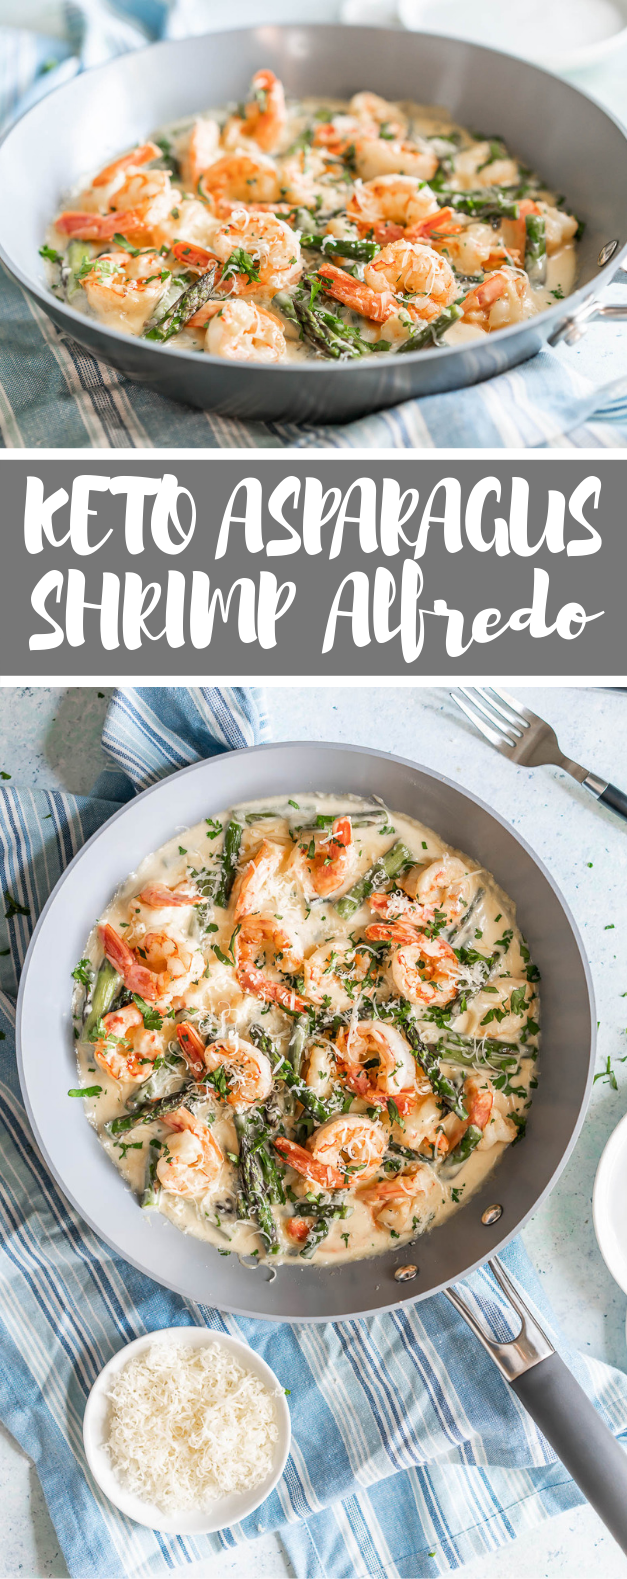 KETO CREAMY ASPARAGUS AND SHRIMP ALFREDO {GLUTEN-FREE & PRIMAL} #diet #lowcarb